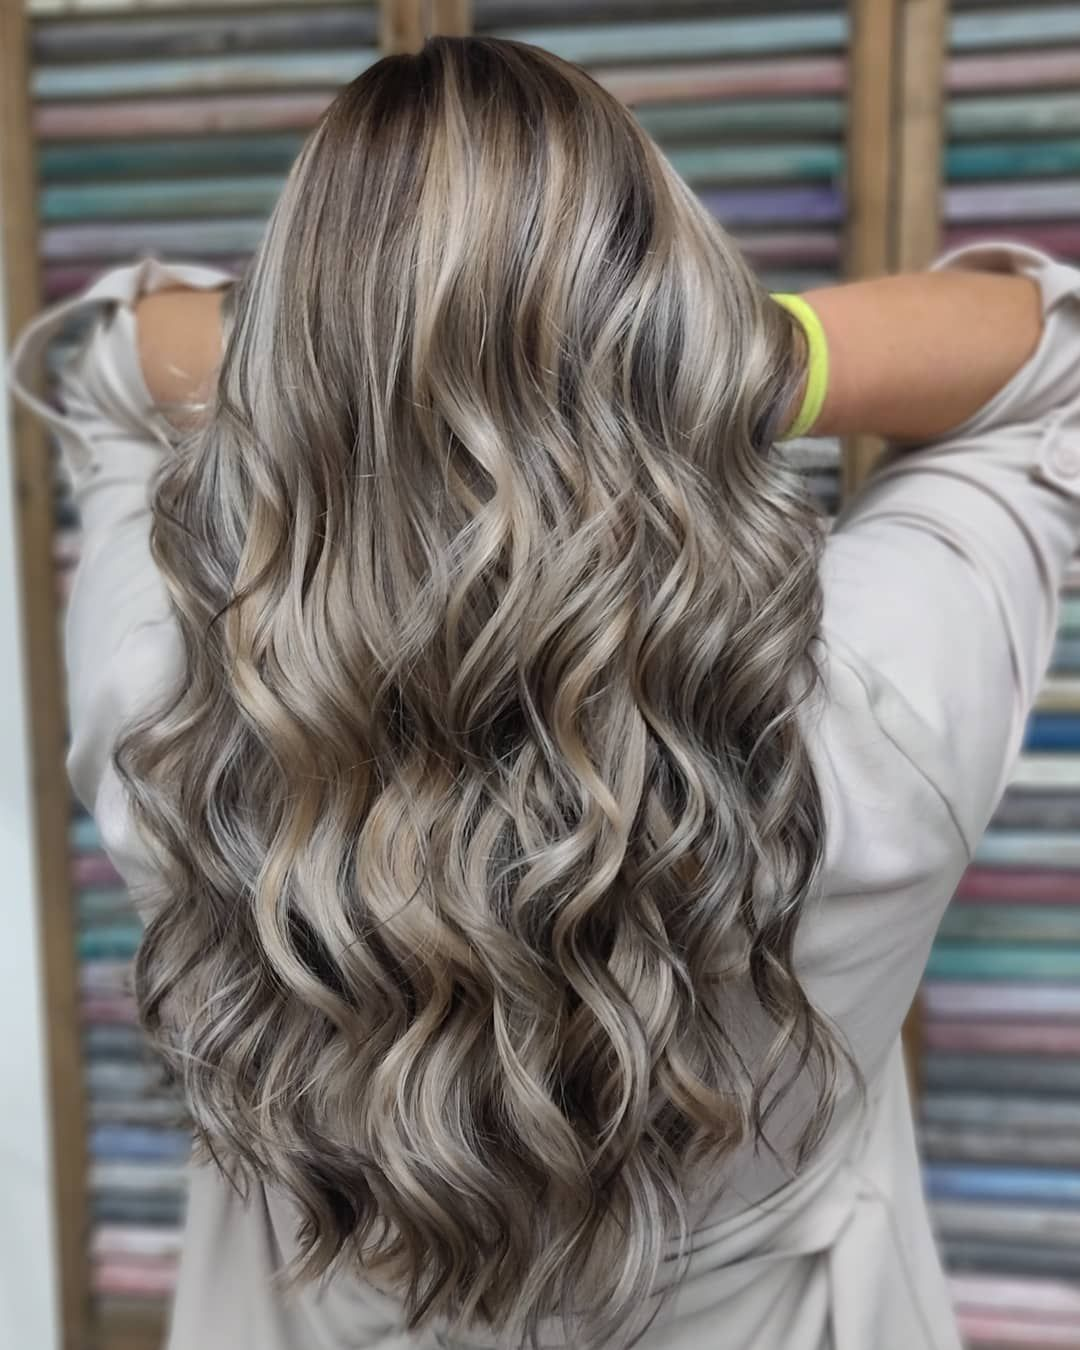 Photo of Hairstyles trend 2019: Mushroom Blonde is the perfect color for blonde and brown hair